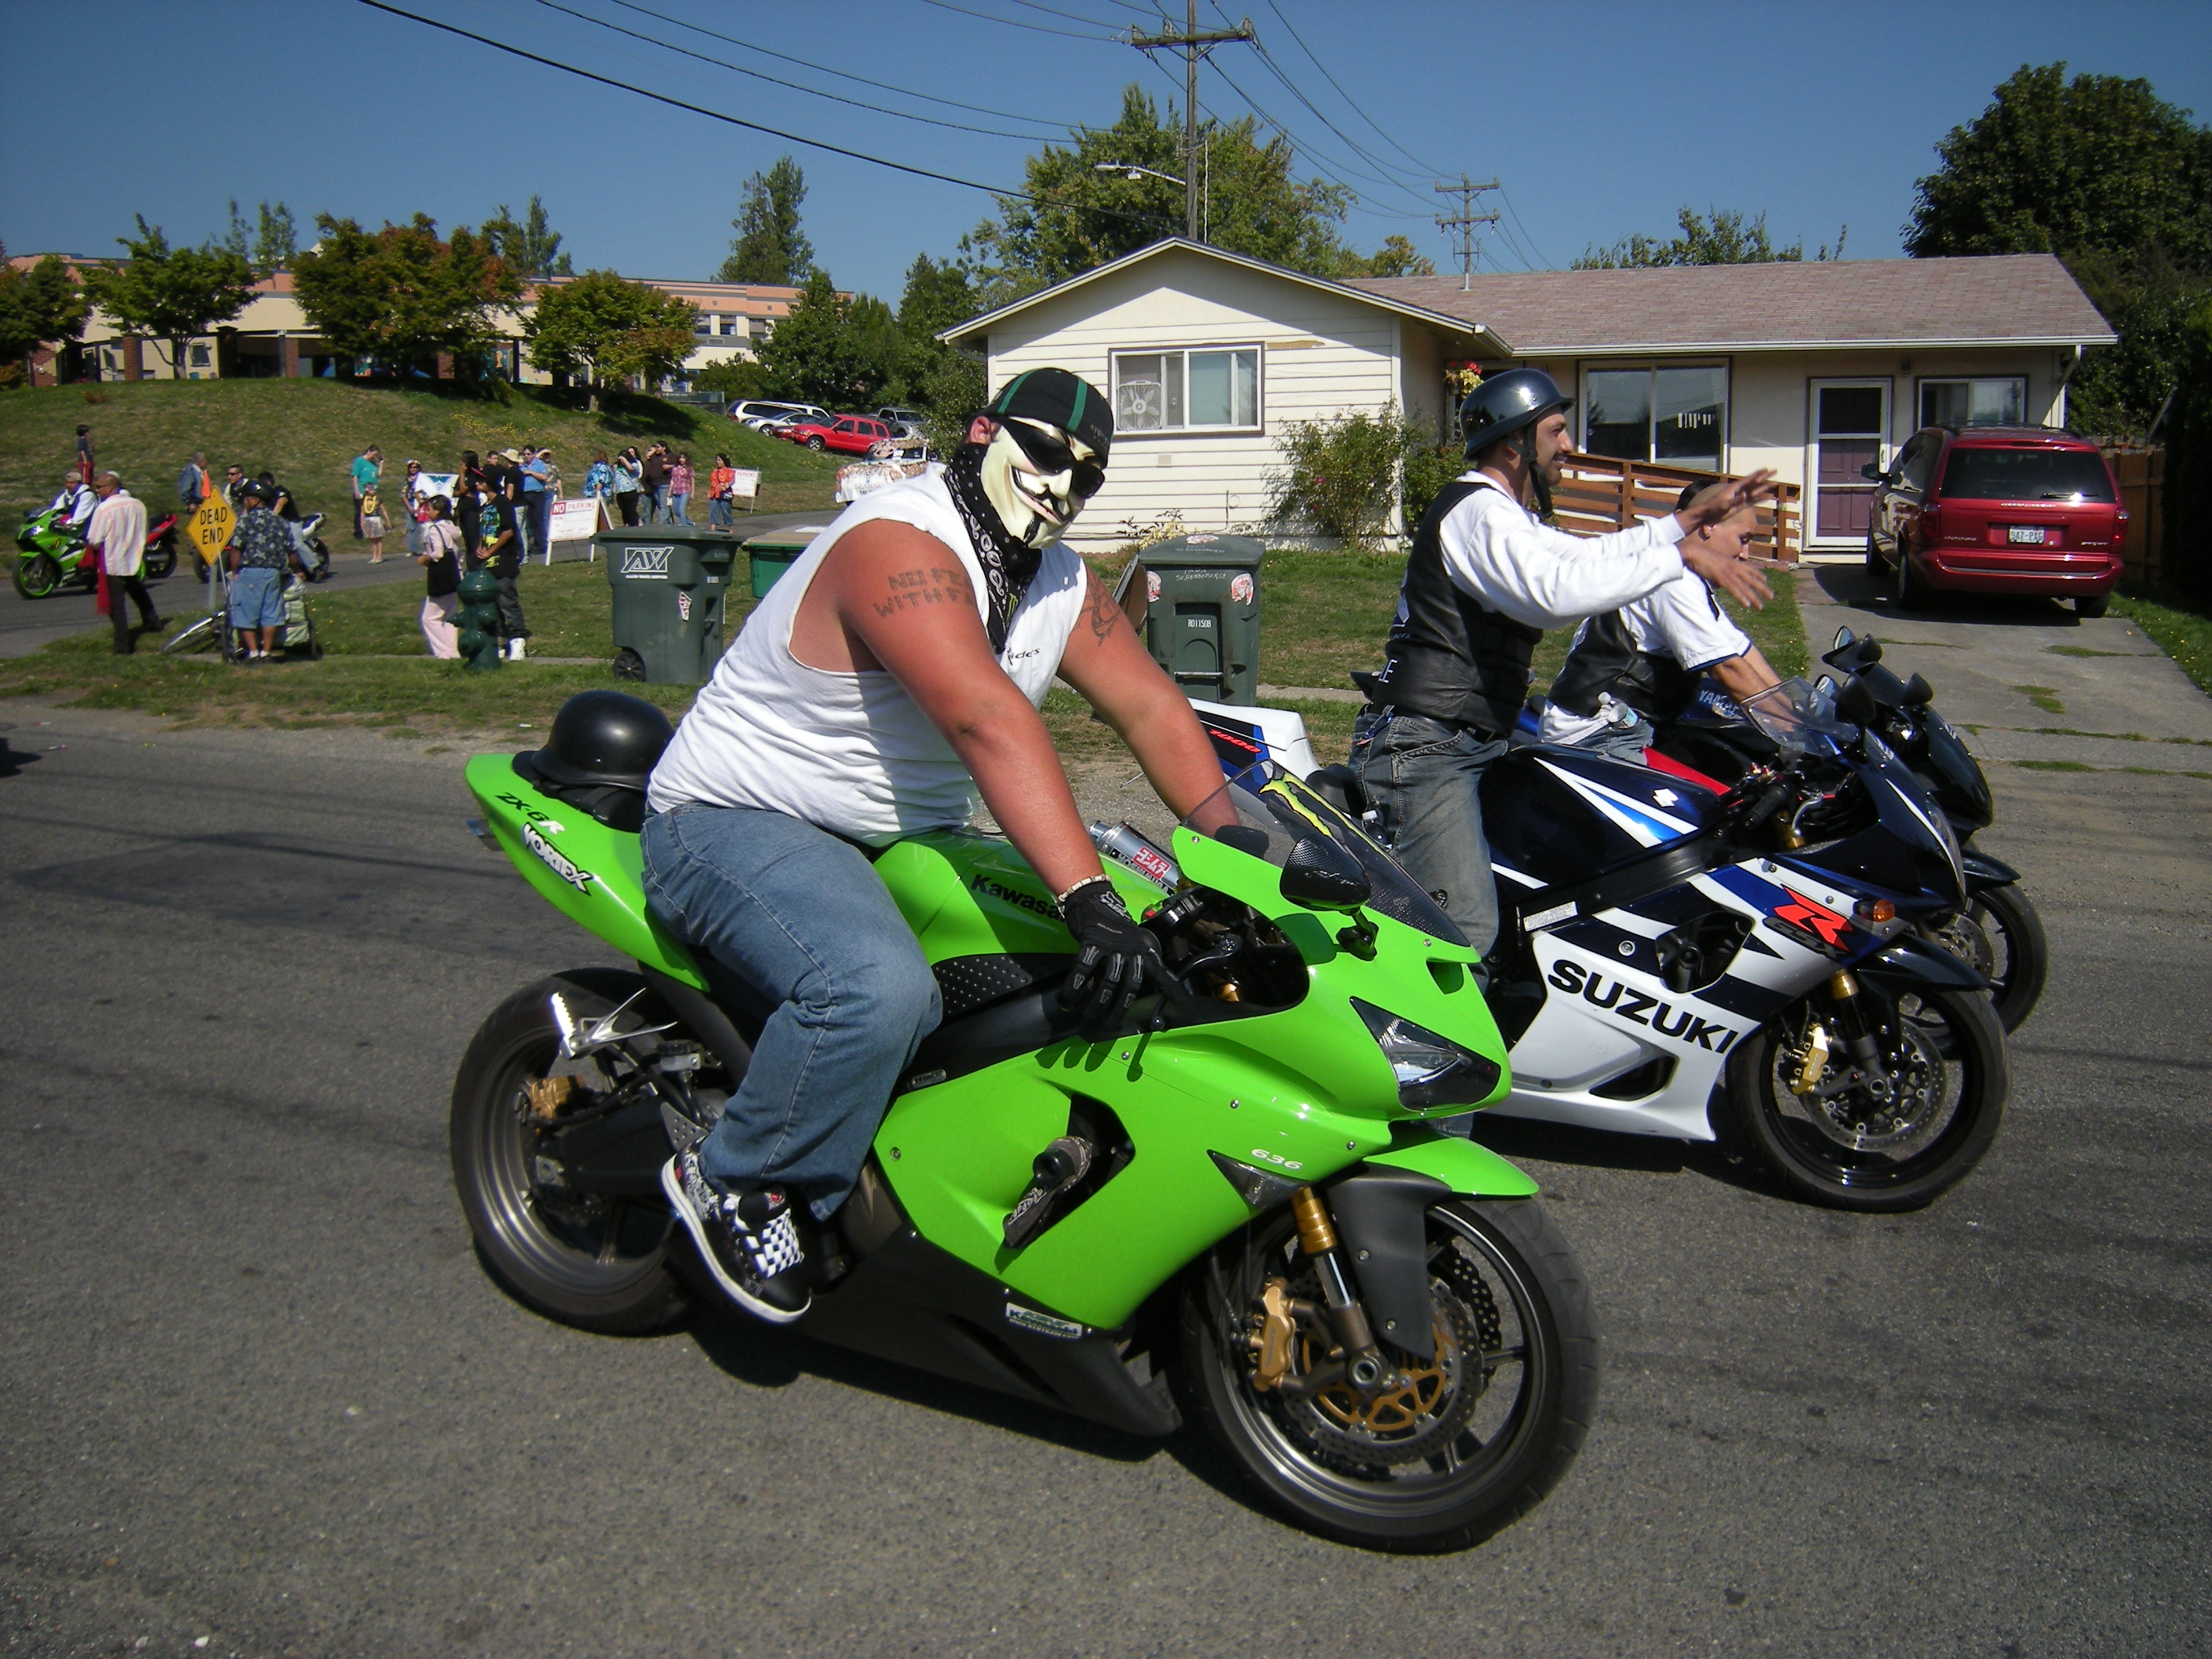 Motorcyclists photo